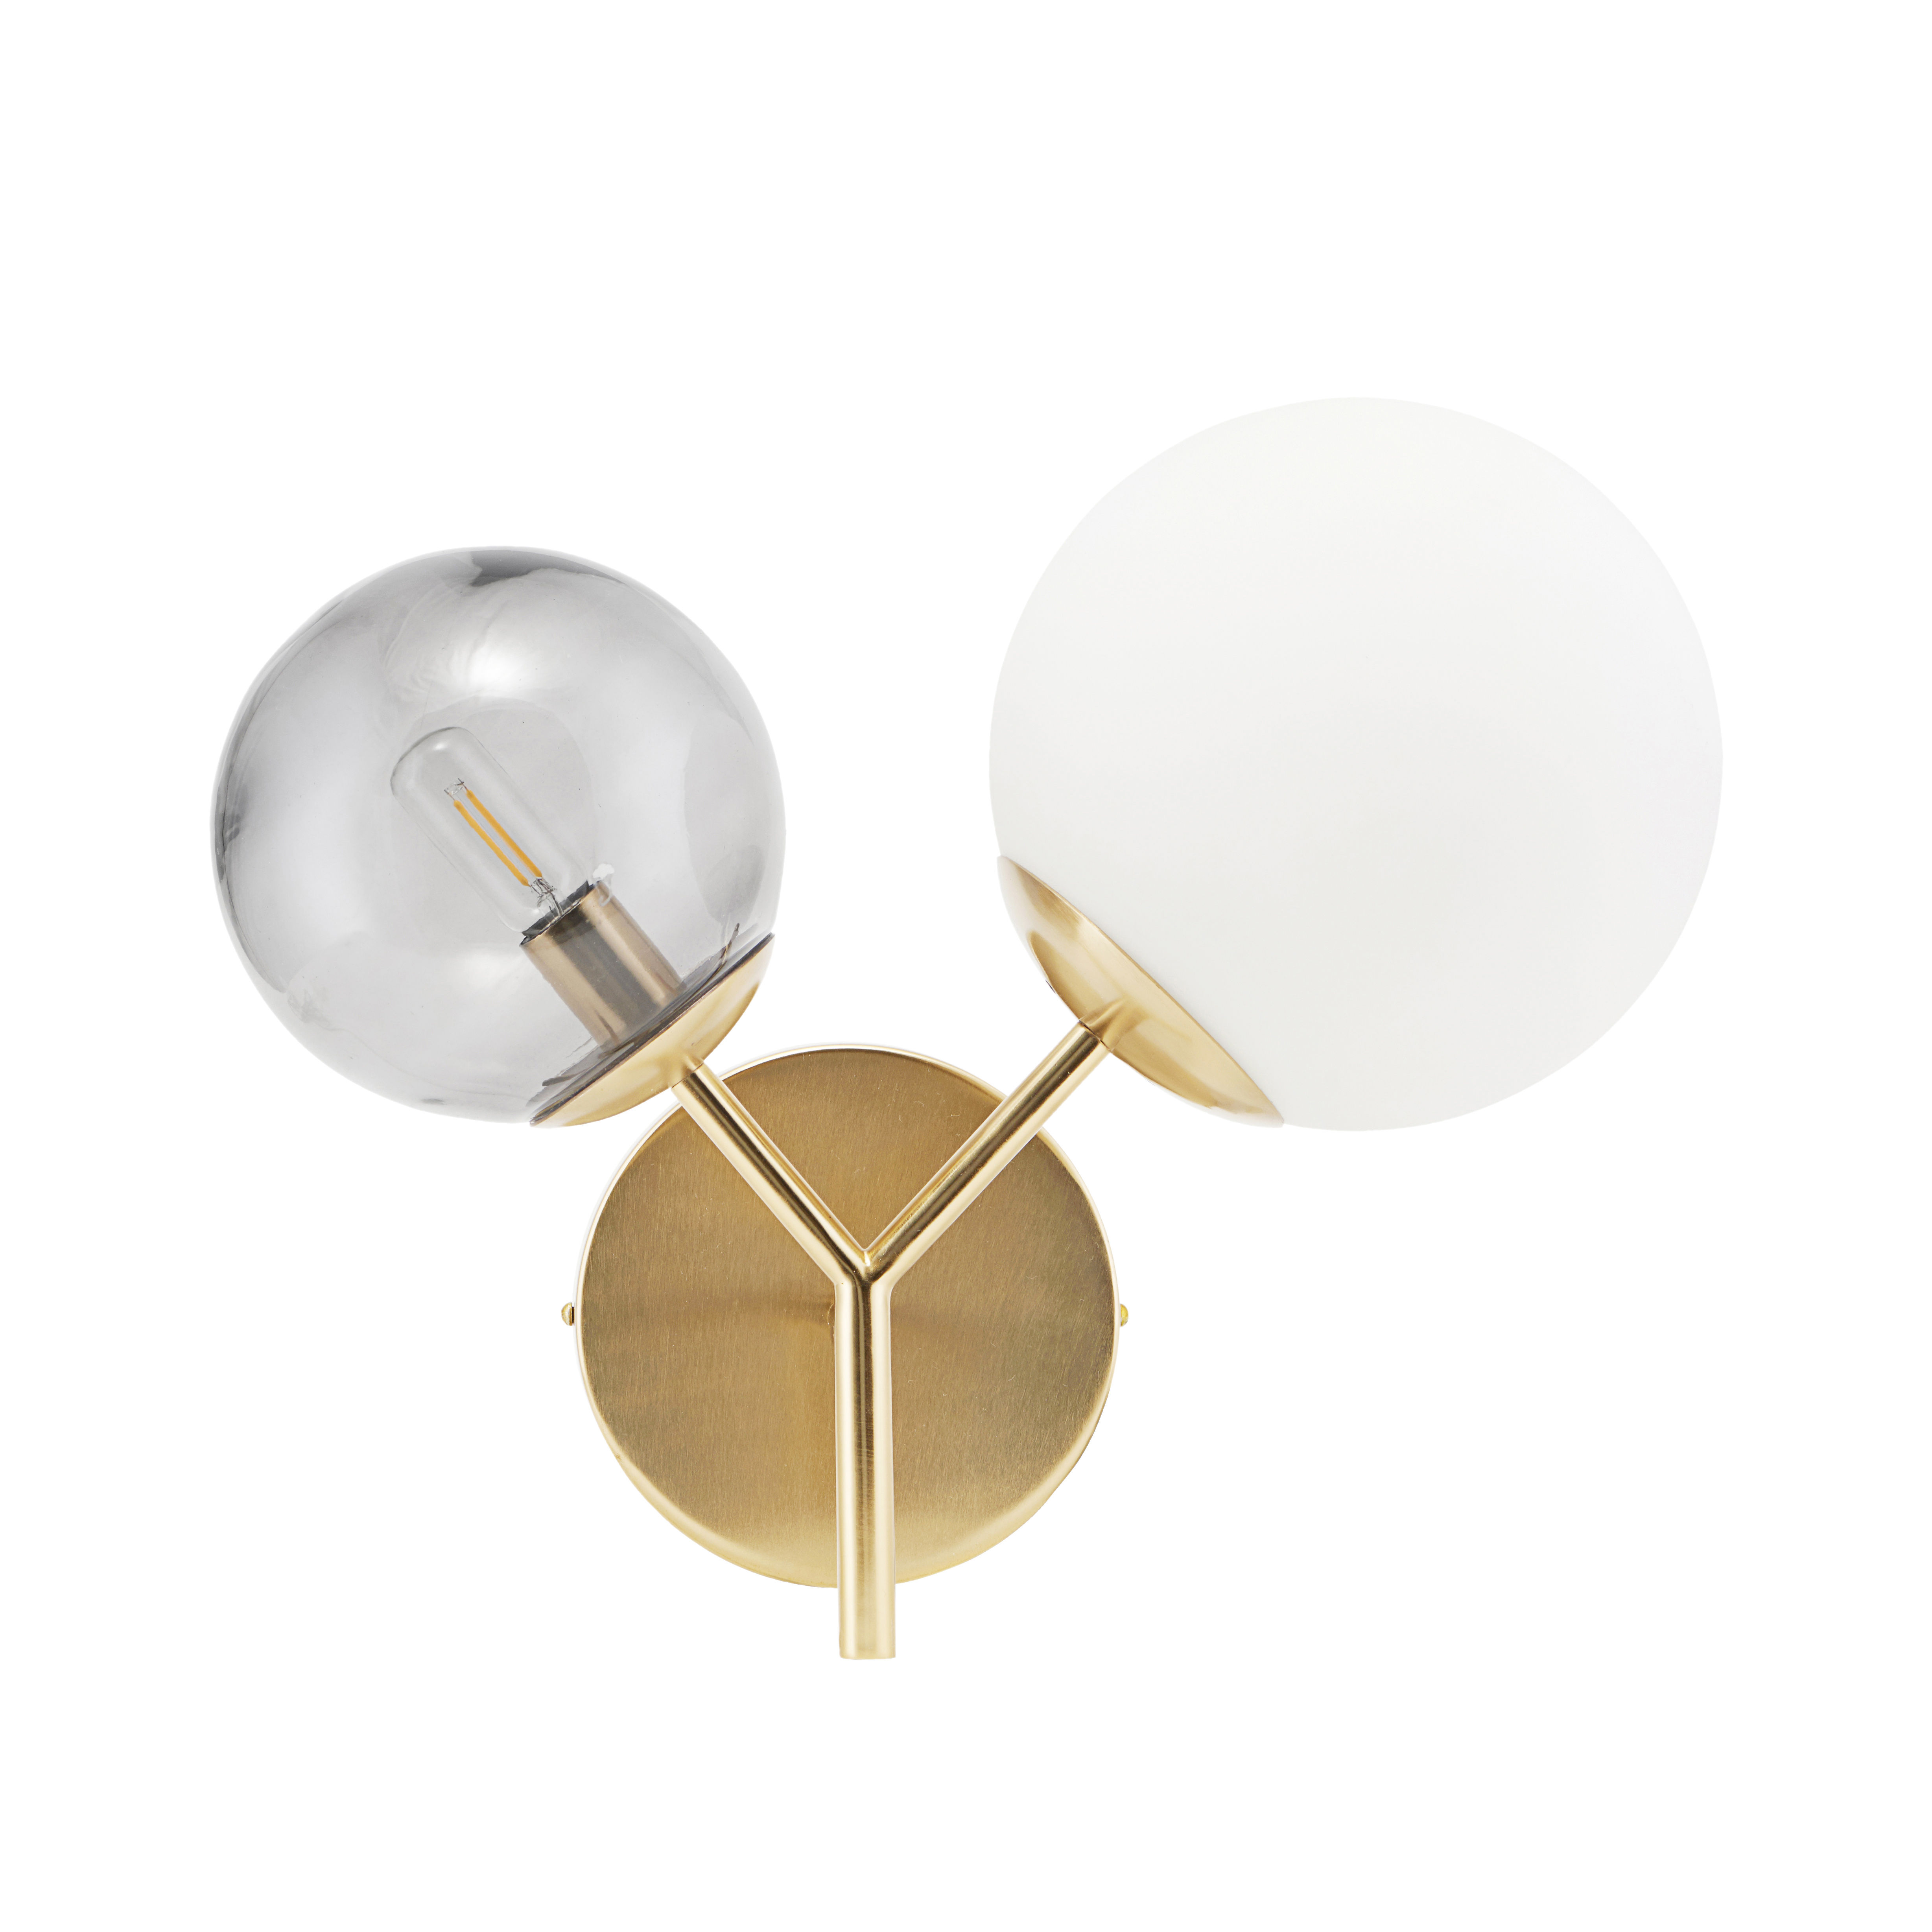 Lighting - Wall Lights - Twice Wall light with plug - / Metal & glass - L 50 cm by House Doctor - White & grey / Brass - Blown glass, Iron